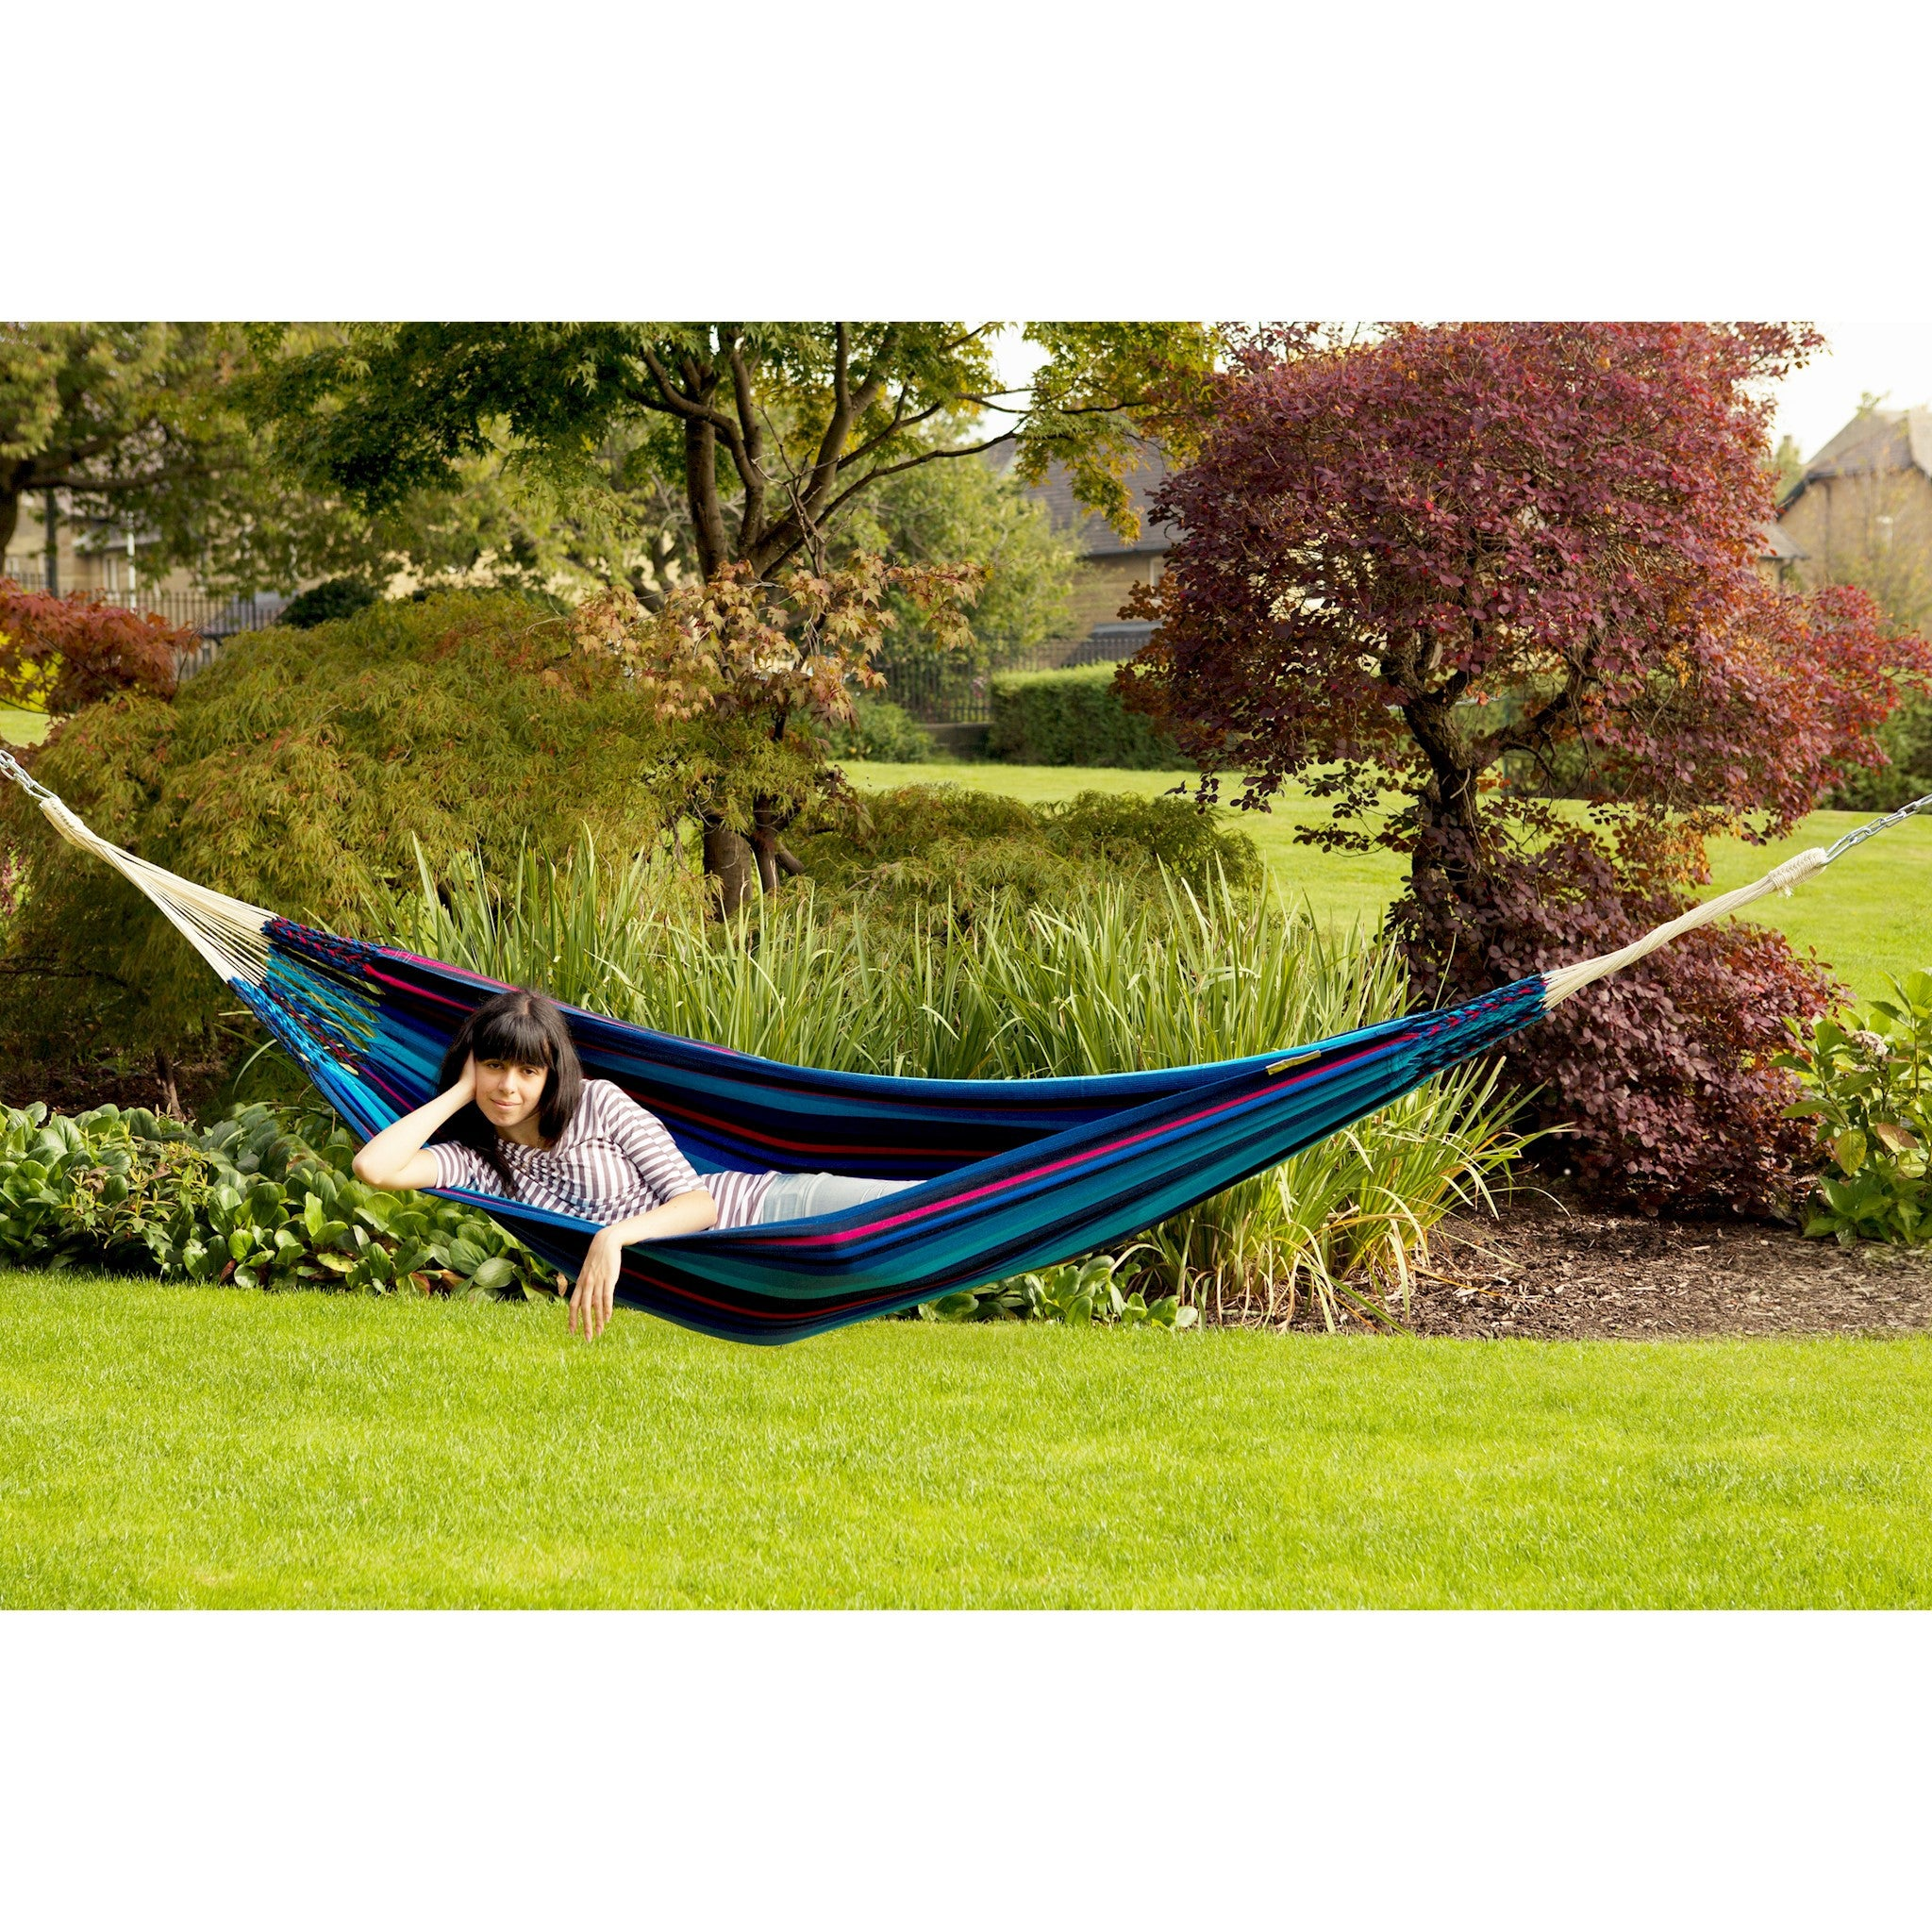 p view domingo cutout by dolphin quick ls hammock family weatherproof plum colombian